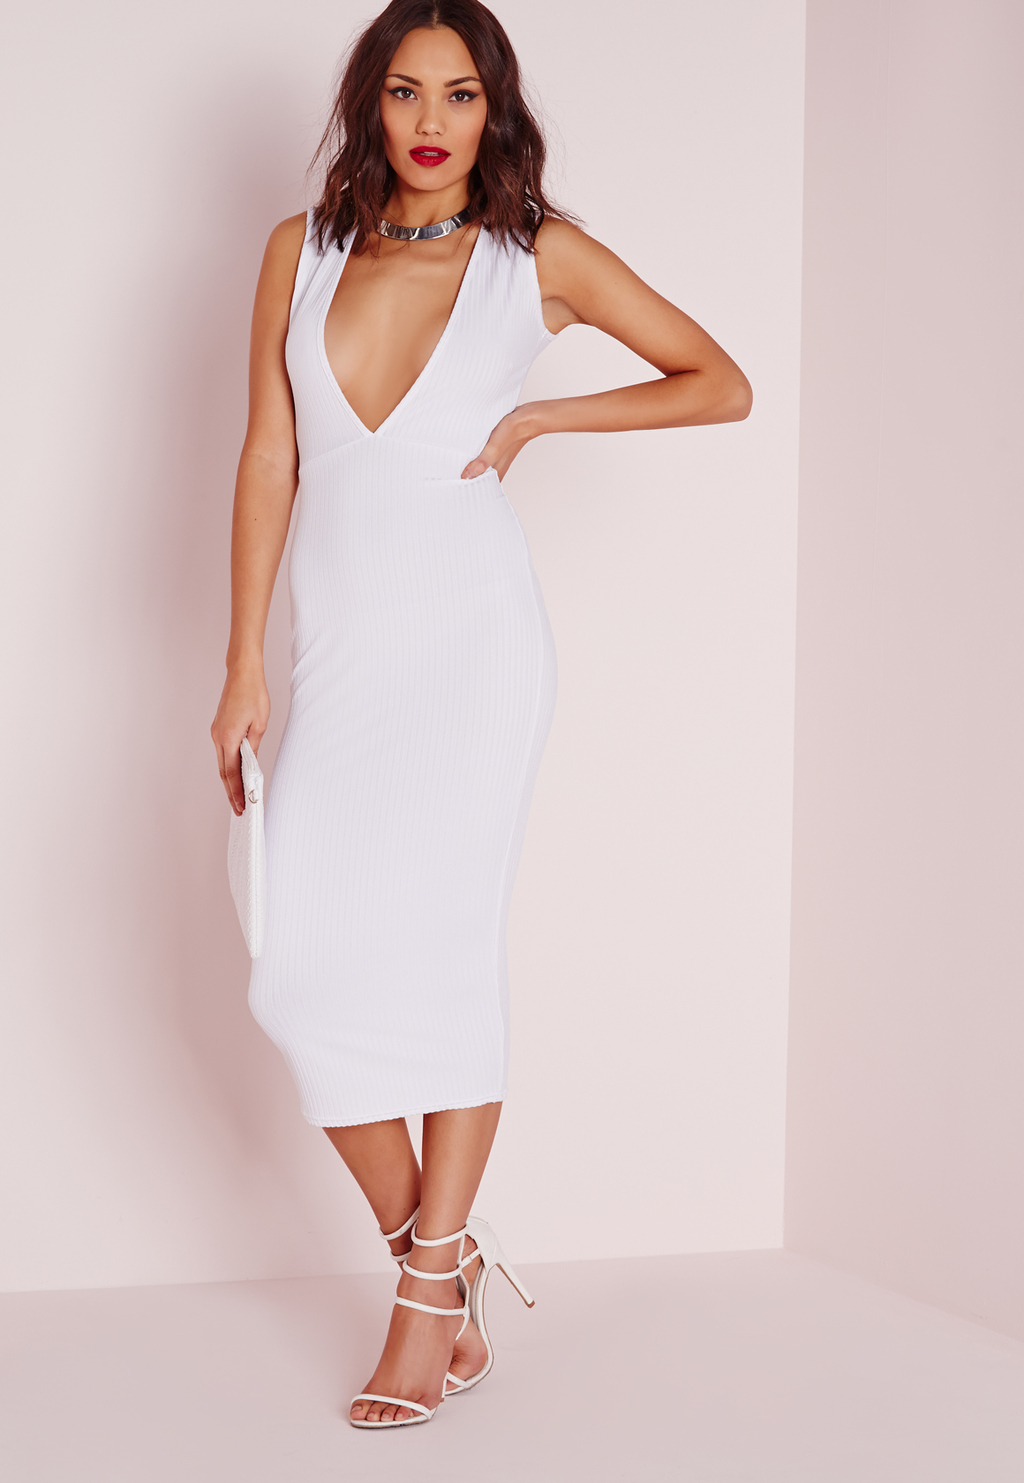 Plunge Ribbed Midi Dress White, White - length: calf length; neckline: plunge; fit: tight; pattern: plain; sleeve style: sleeveless; style: bodycon; hip detail: fitted at hip; predominant colour: white; occasions: evening; fibres: polyester/polyamide - stretch; sleeve length: sleeveless; texture group: jersey - clingy; pattern type: fabric; season: s/s 2016; wardrobe: event